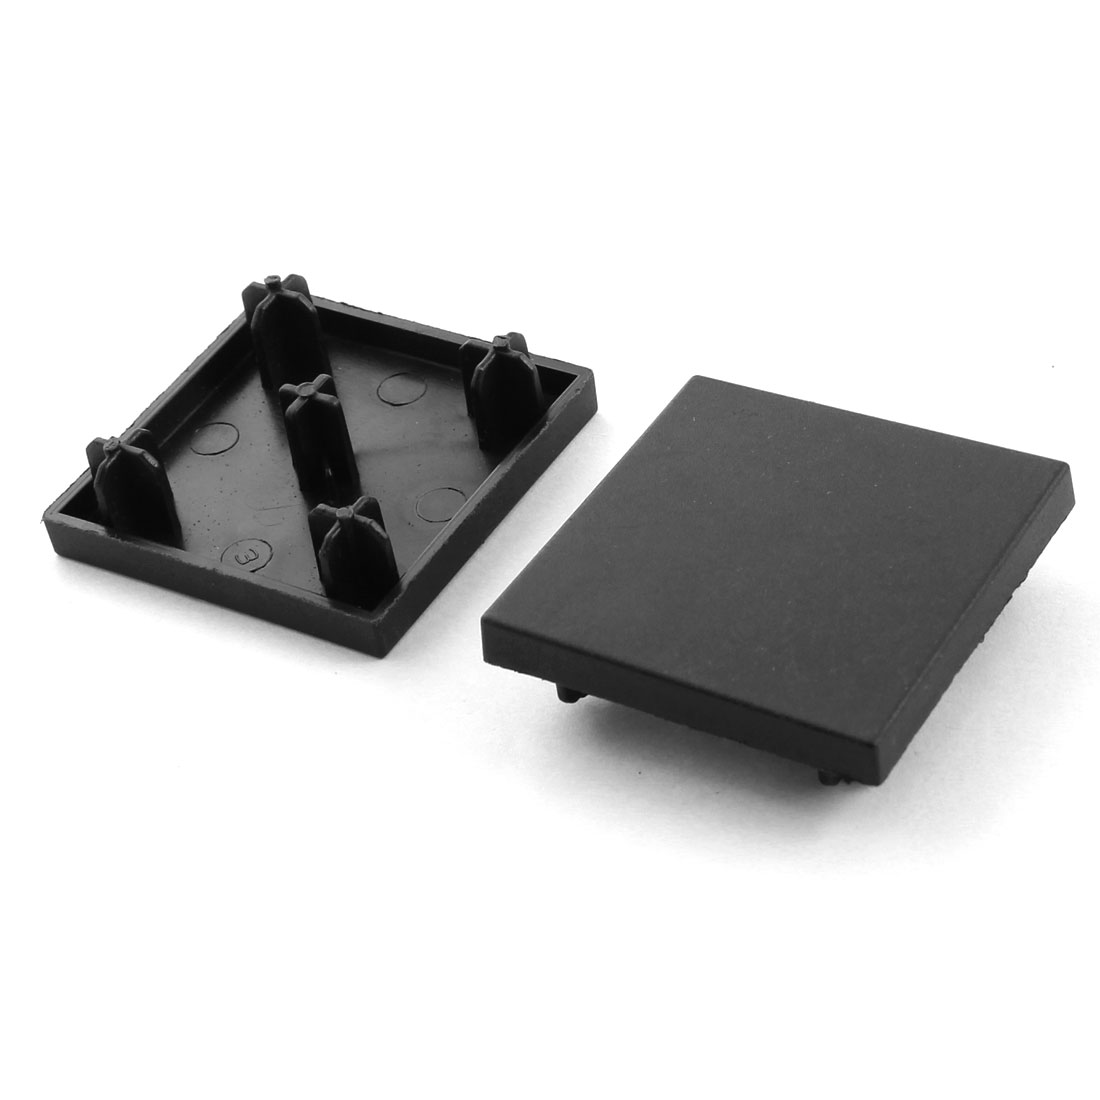 2Pcs 40mm x 40mm Square T-Slotted Aluminum Profile Extrusion End Cap Cover Black